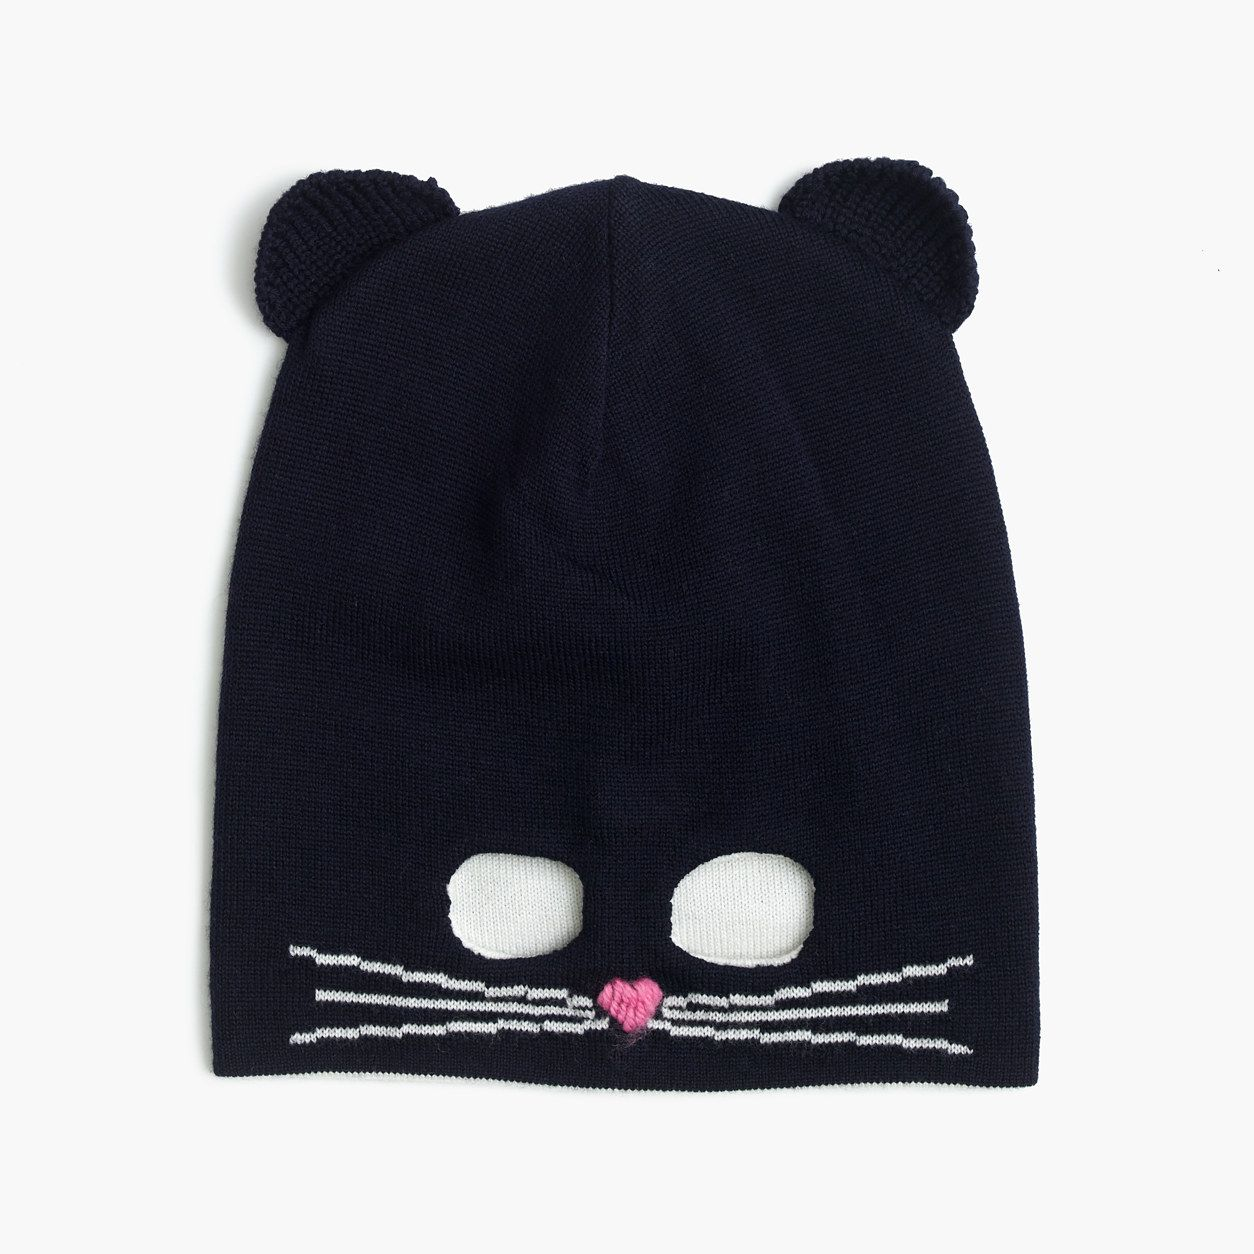 3fdab2cdee5 crewcuts Girls Kitty Mask Beanie Hat (Size L-XL Kid)